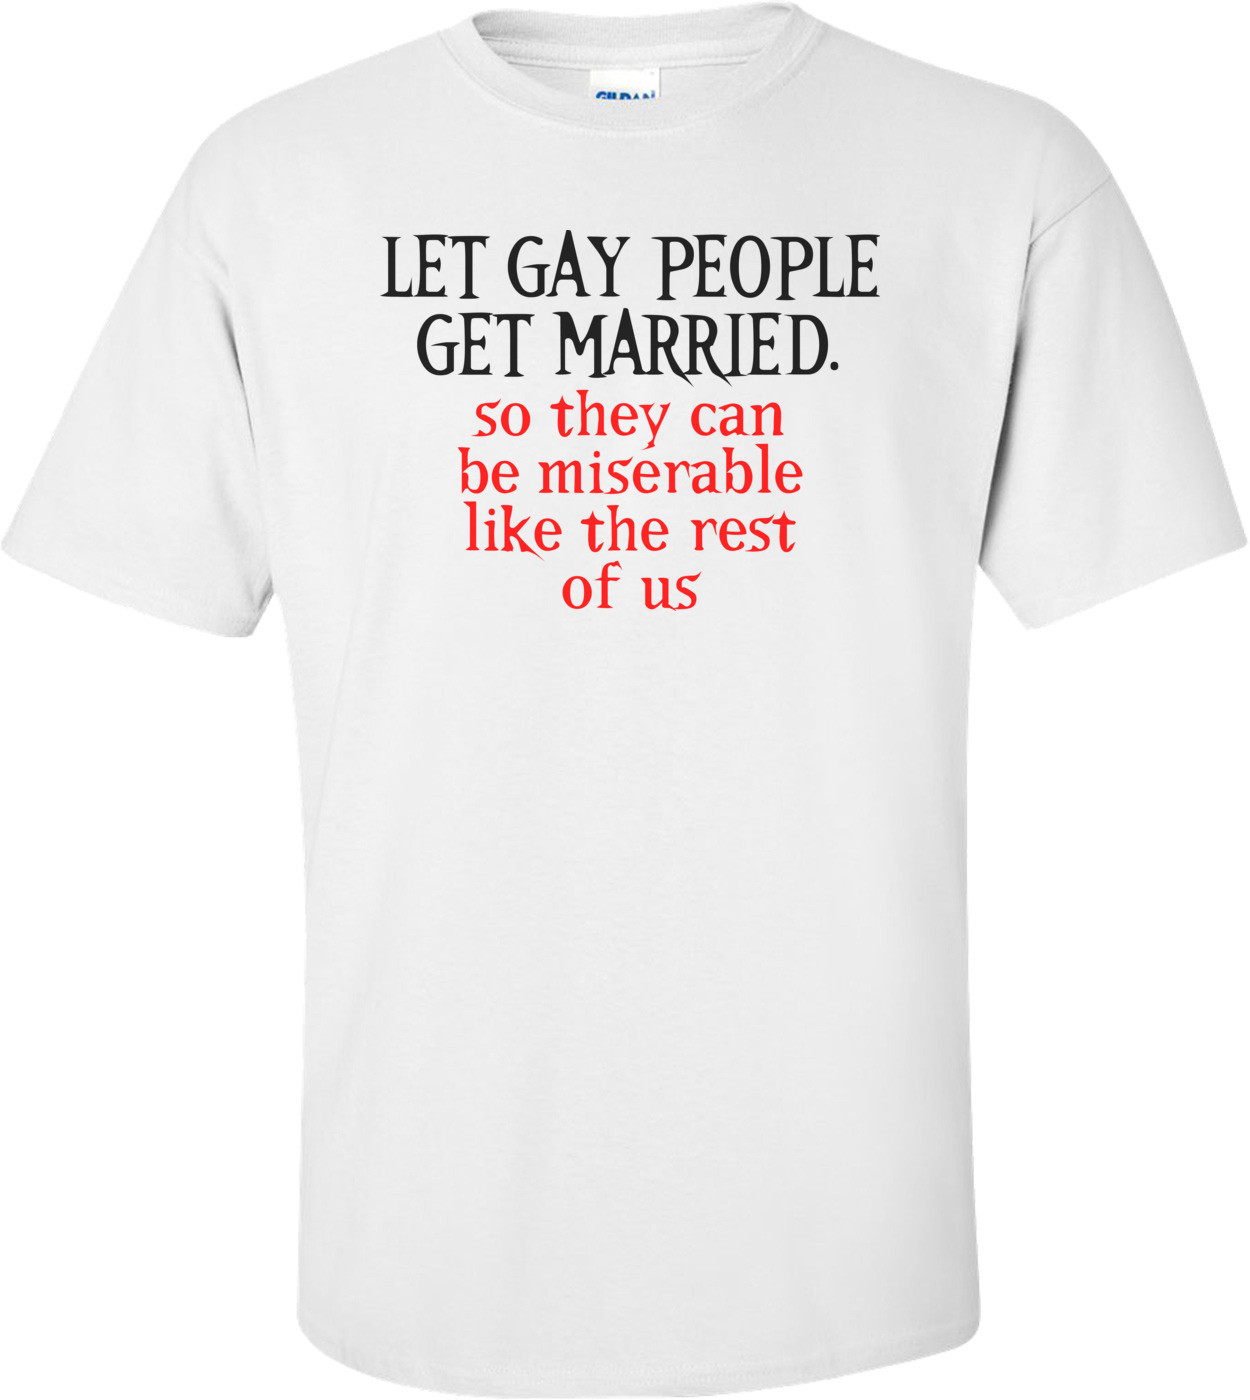 Let Gay People Get Married, So They Can Be Miserable Like The Rest Of Us Funny Shirt